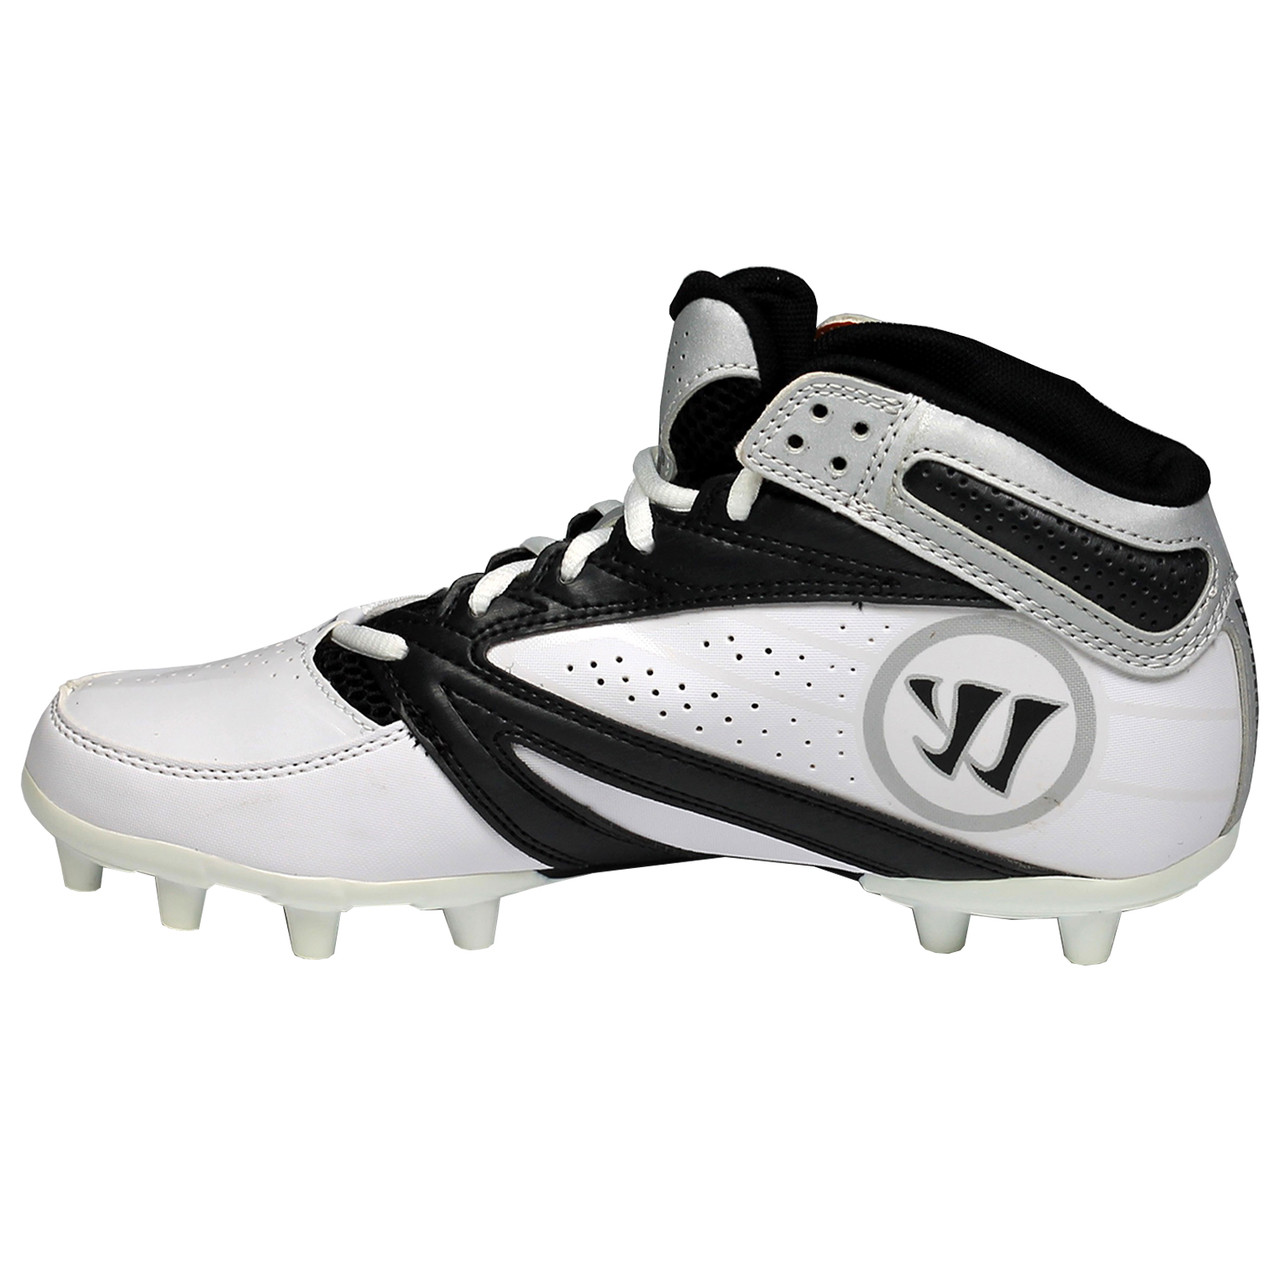 54bcda829 Warrior 2nd Degree Senior Lacrosse Cleats - White